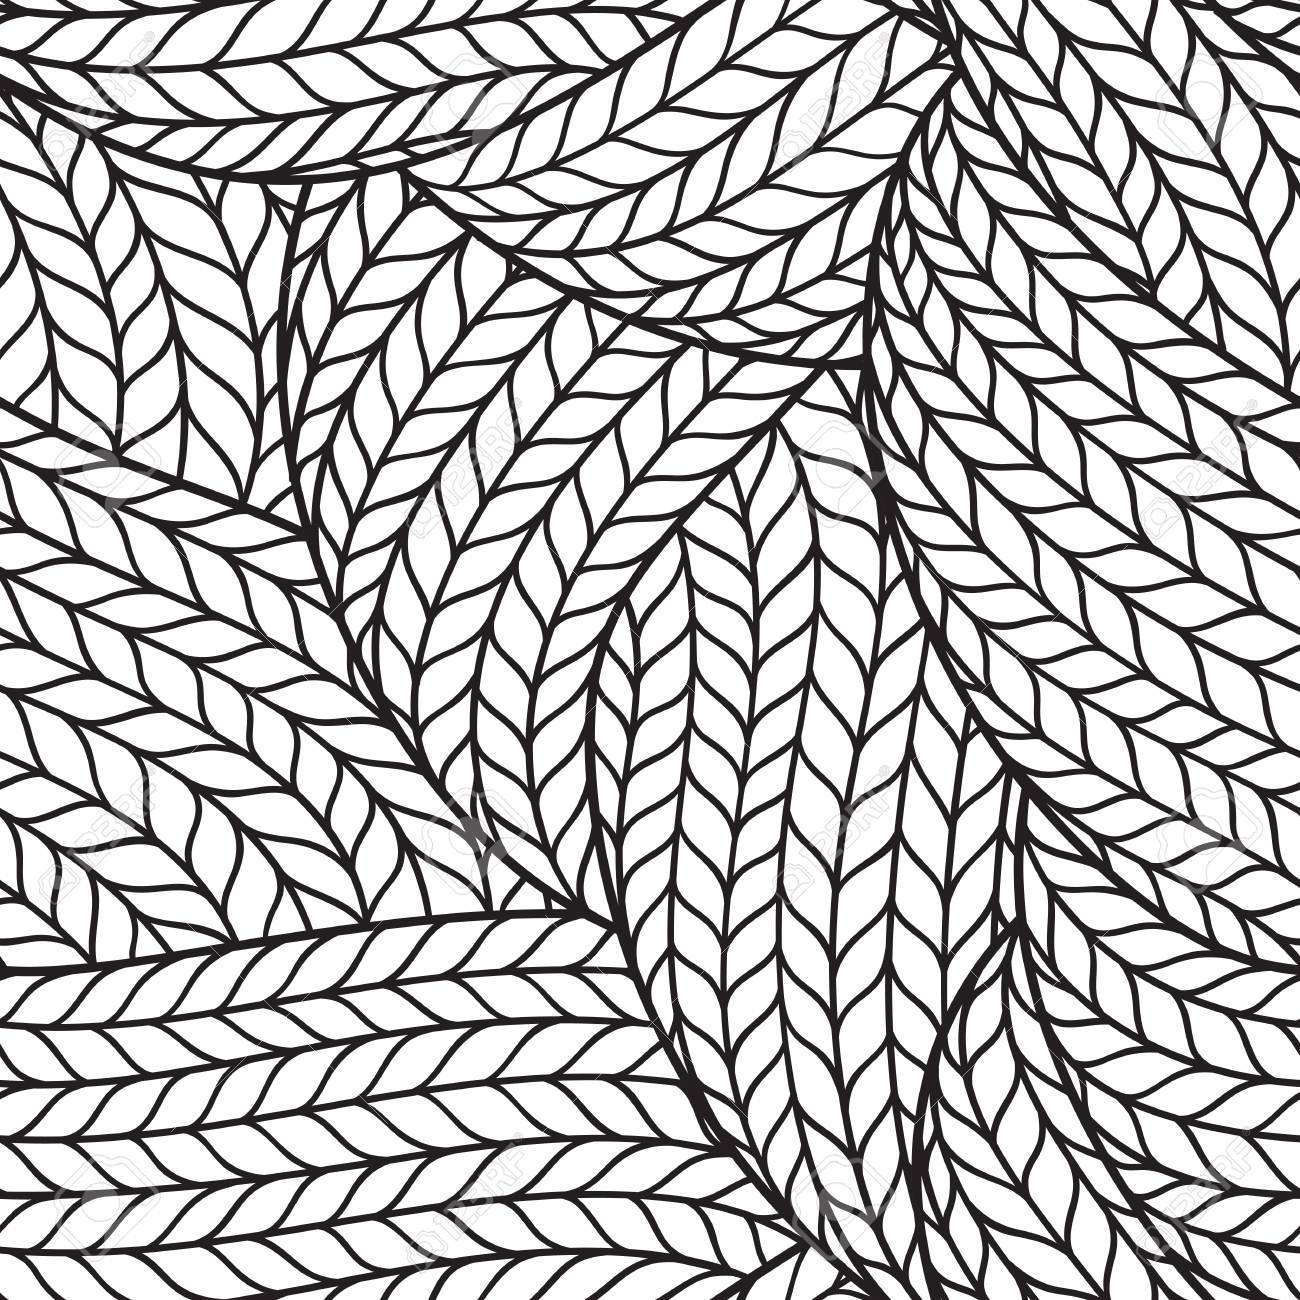 1300x1300 Seamless Pattern For Coloring Book For Adult Abstract Monochrome